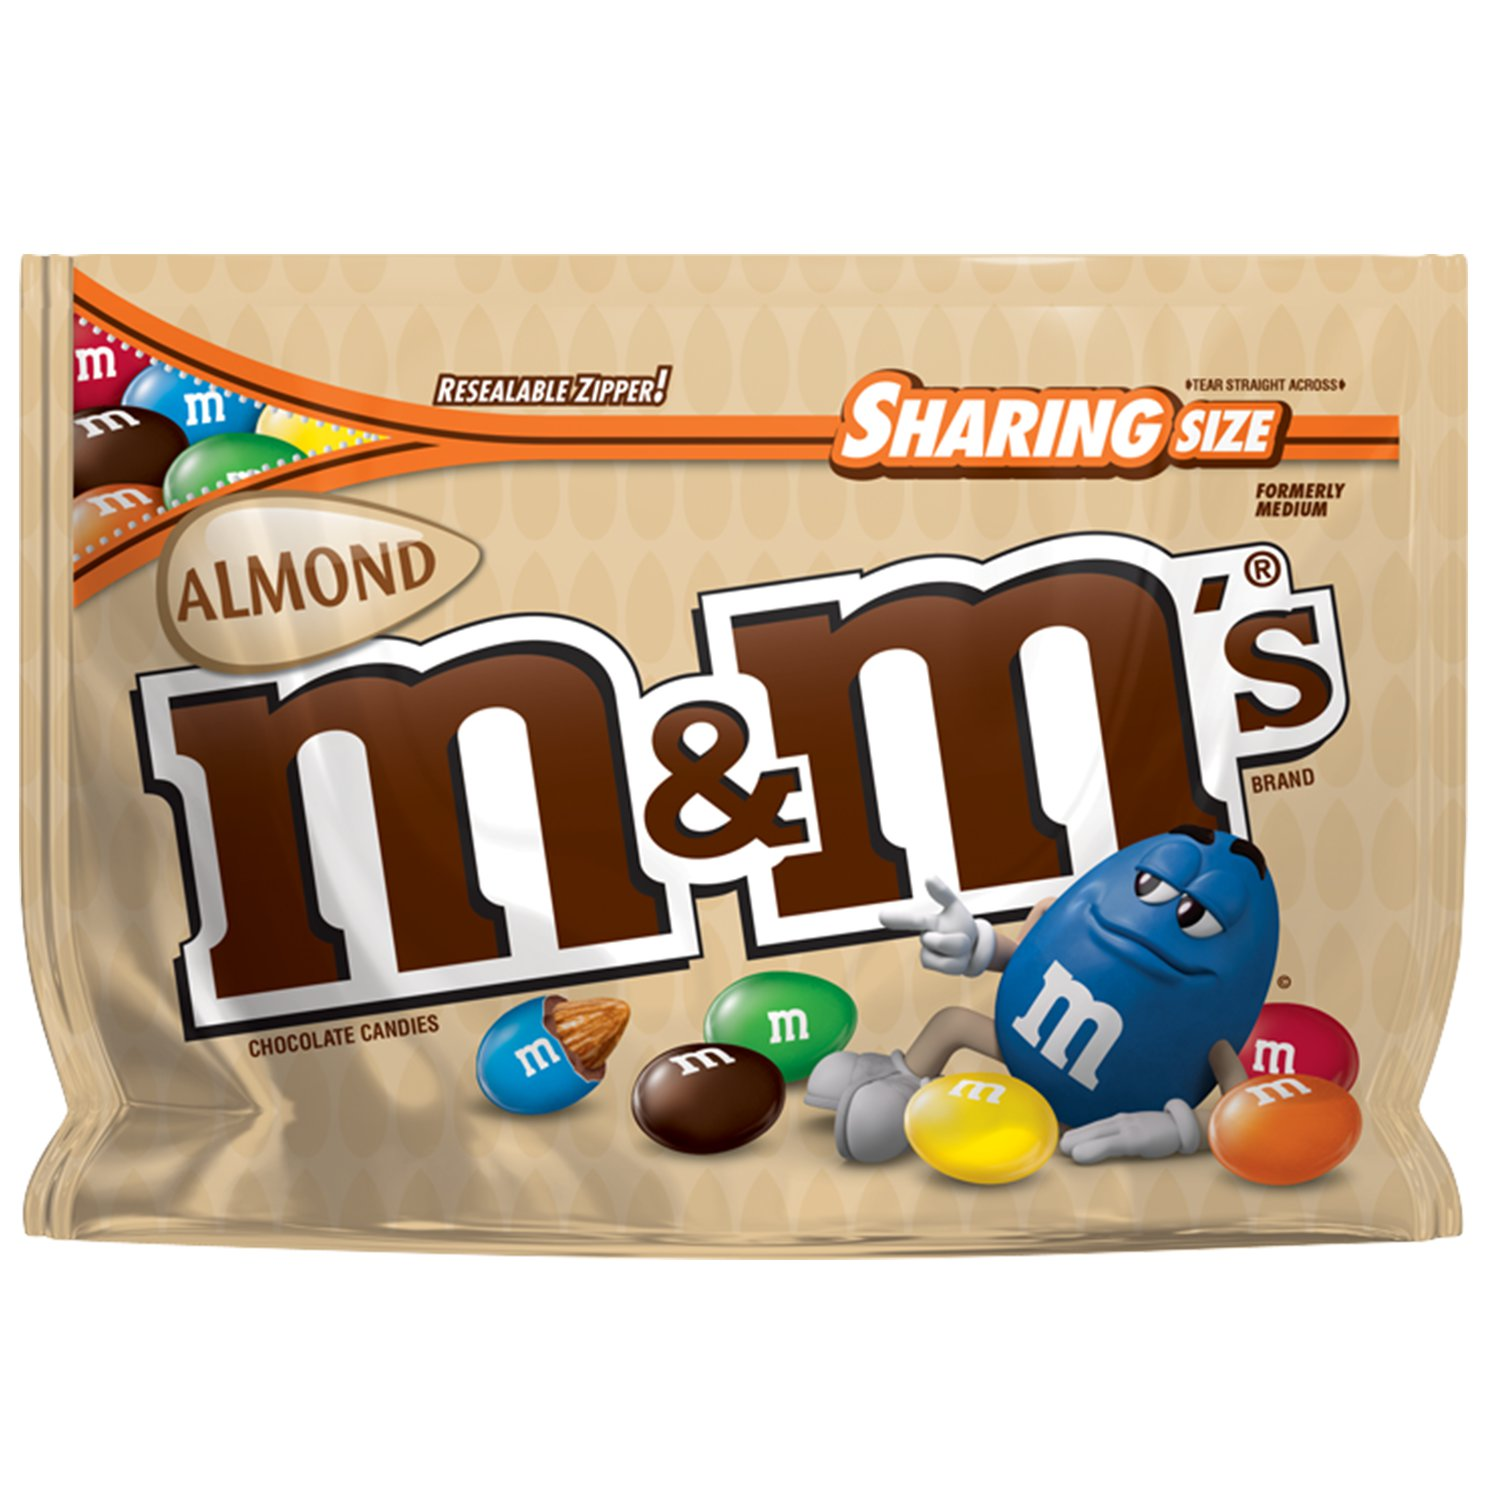 M&M'S Almond Chocolate Candy Sharing Size, 9.3 Ounce Bag